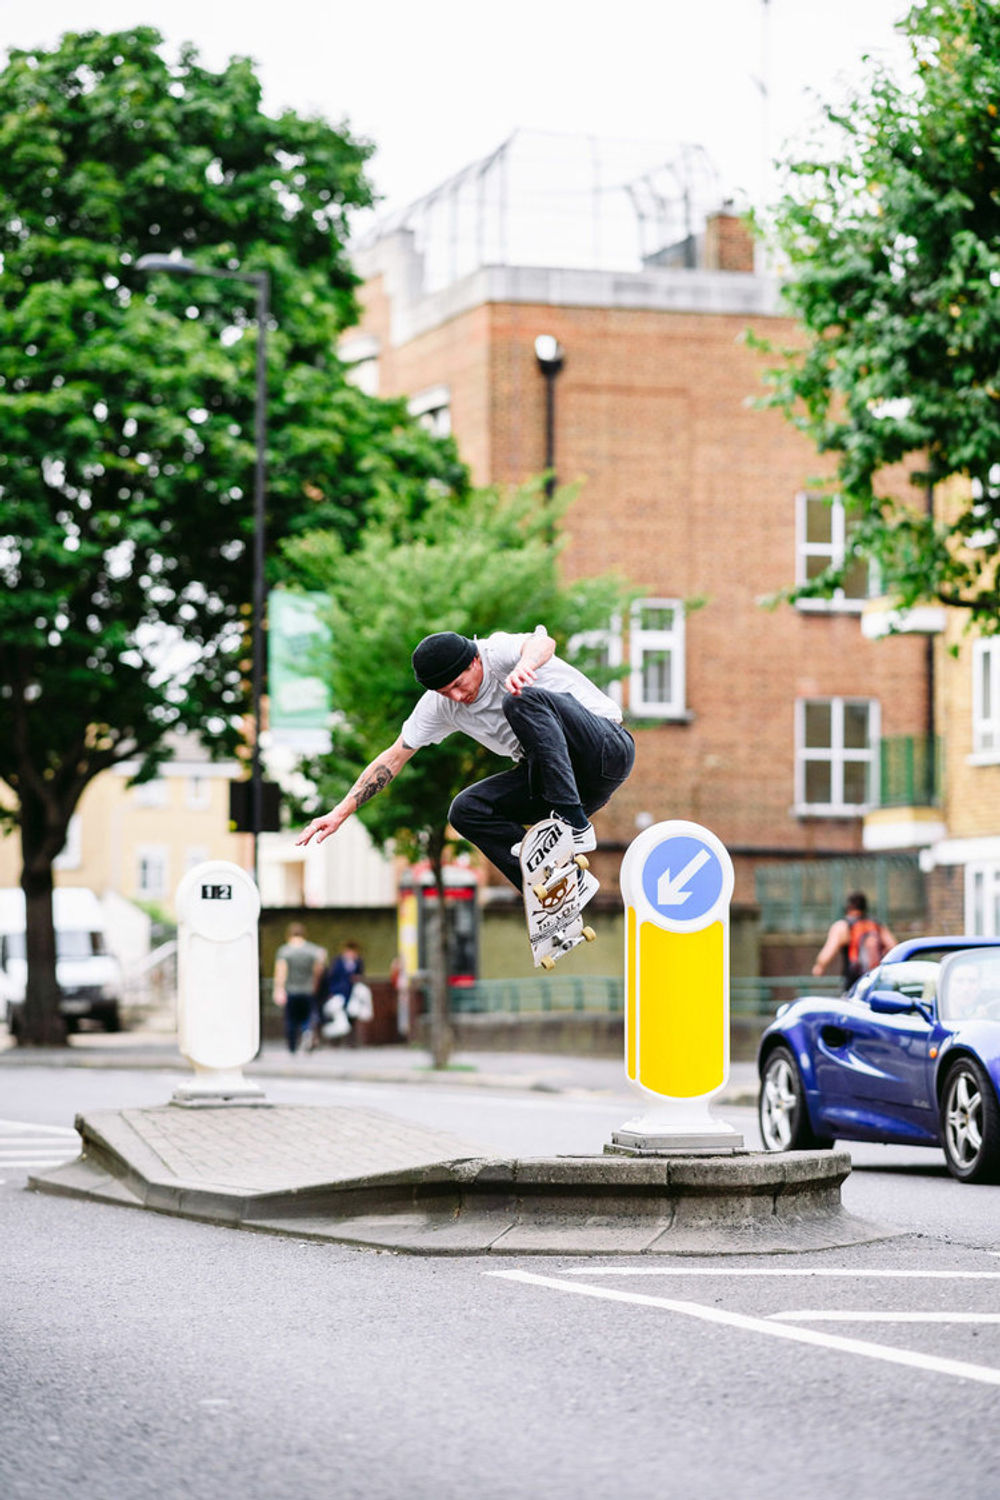 _ihc3845e-mikey-patrick-ollie-up-wallie-out-levis-skateboarding-london-august-2017-photographer-maksim-kalanep